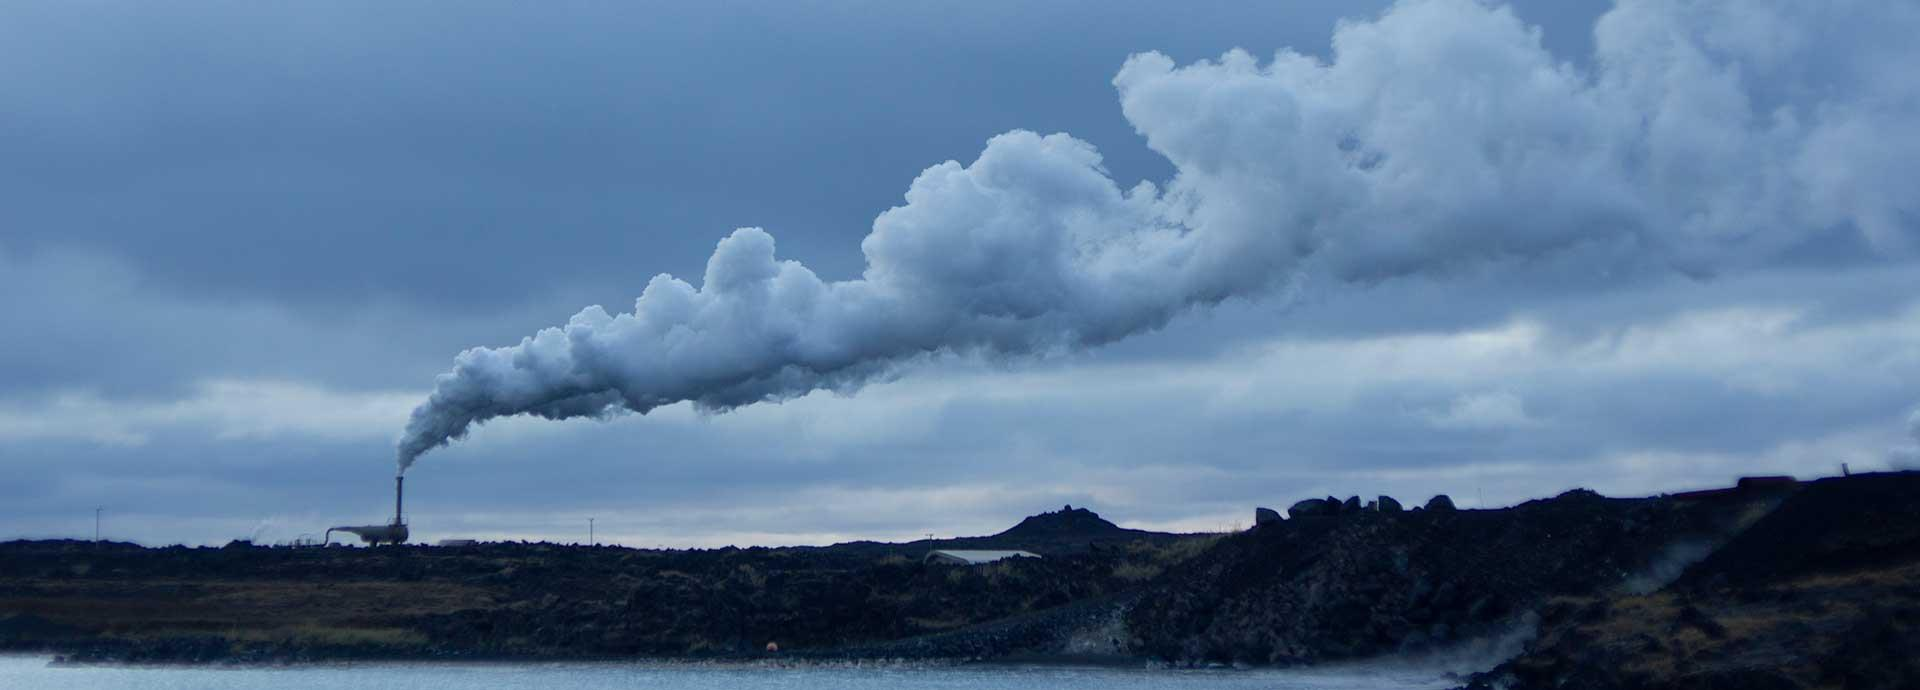 A sustainable energy revolution, the Icelandic way